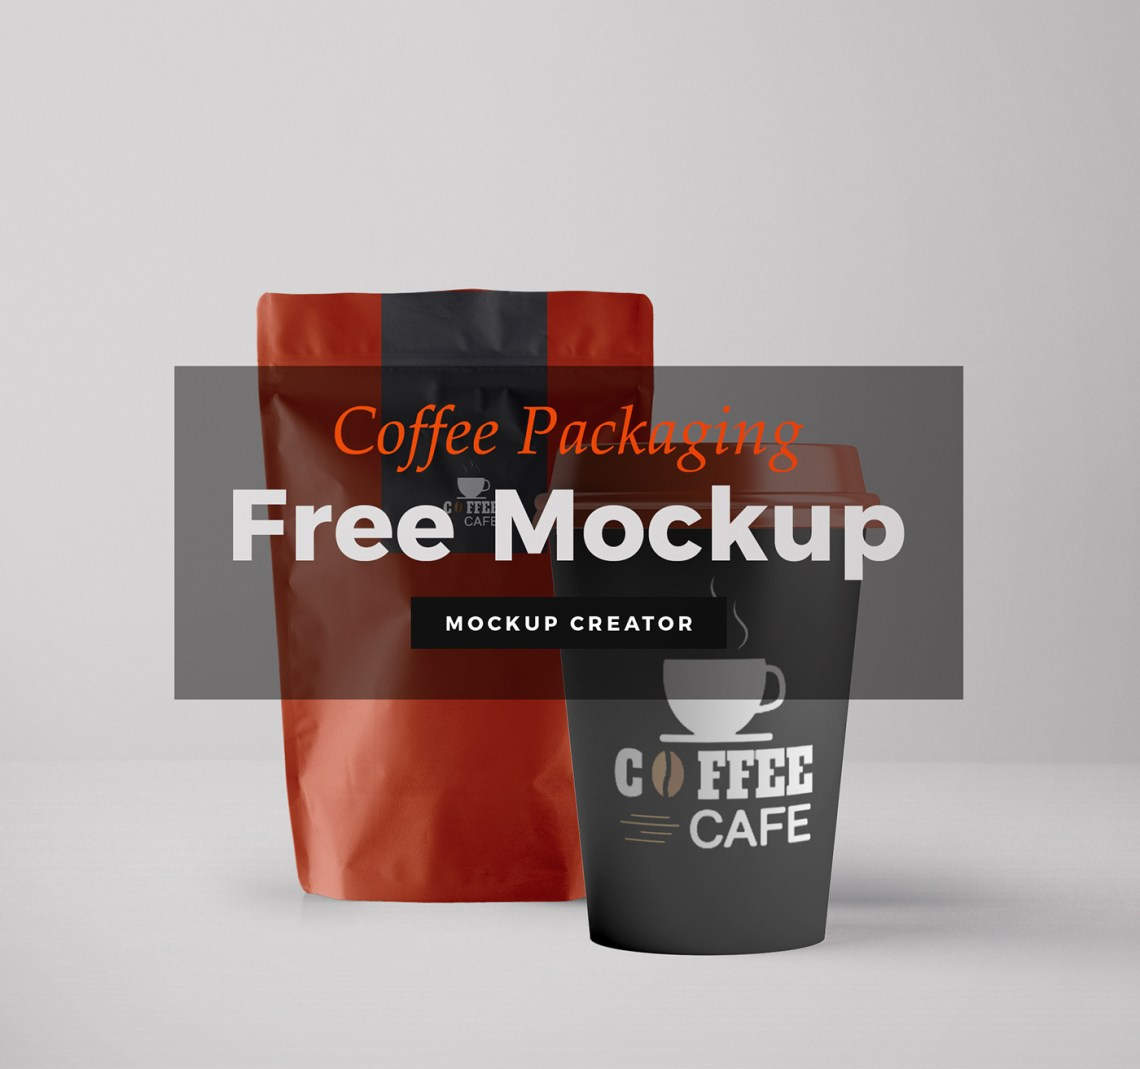 Download Free Mockup - Coffee Packaging on Behance